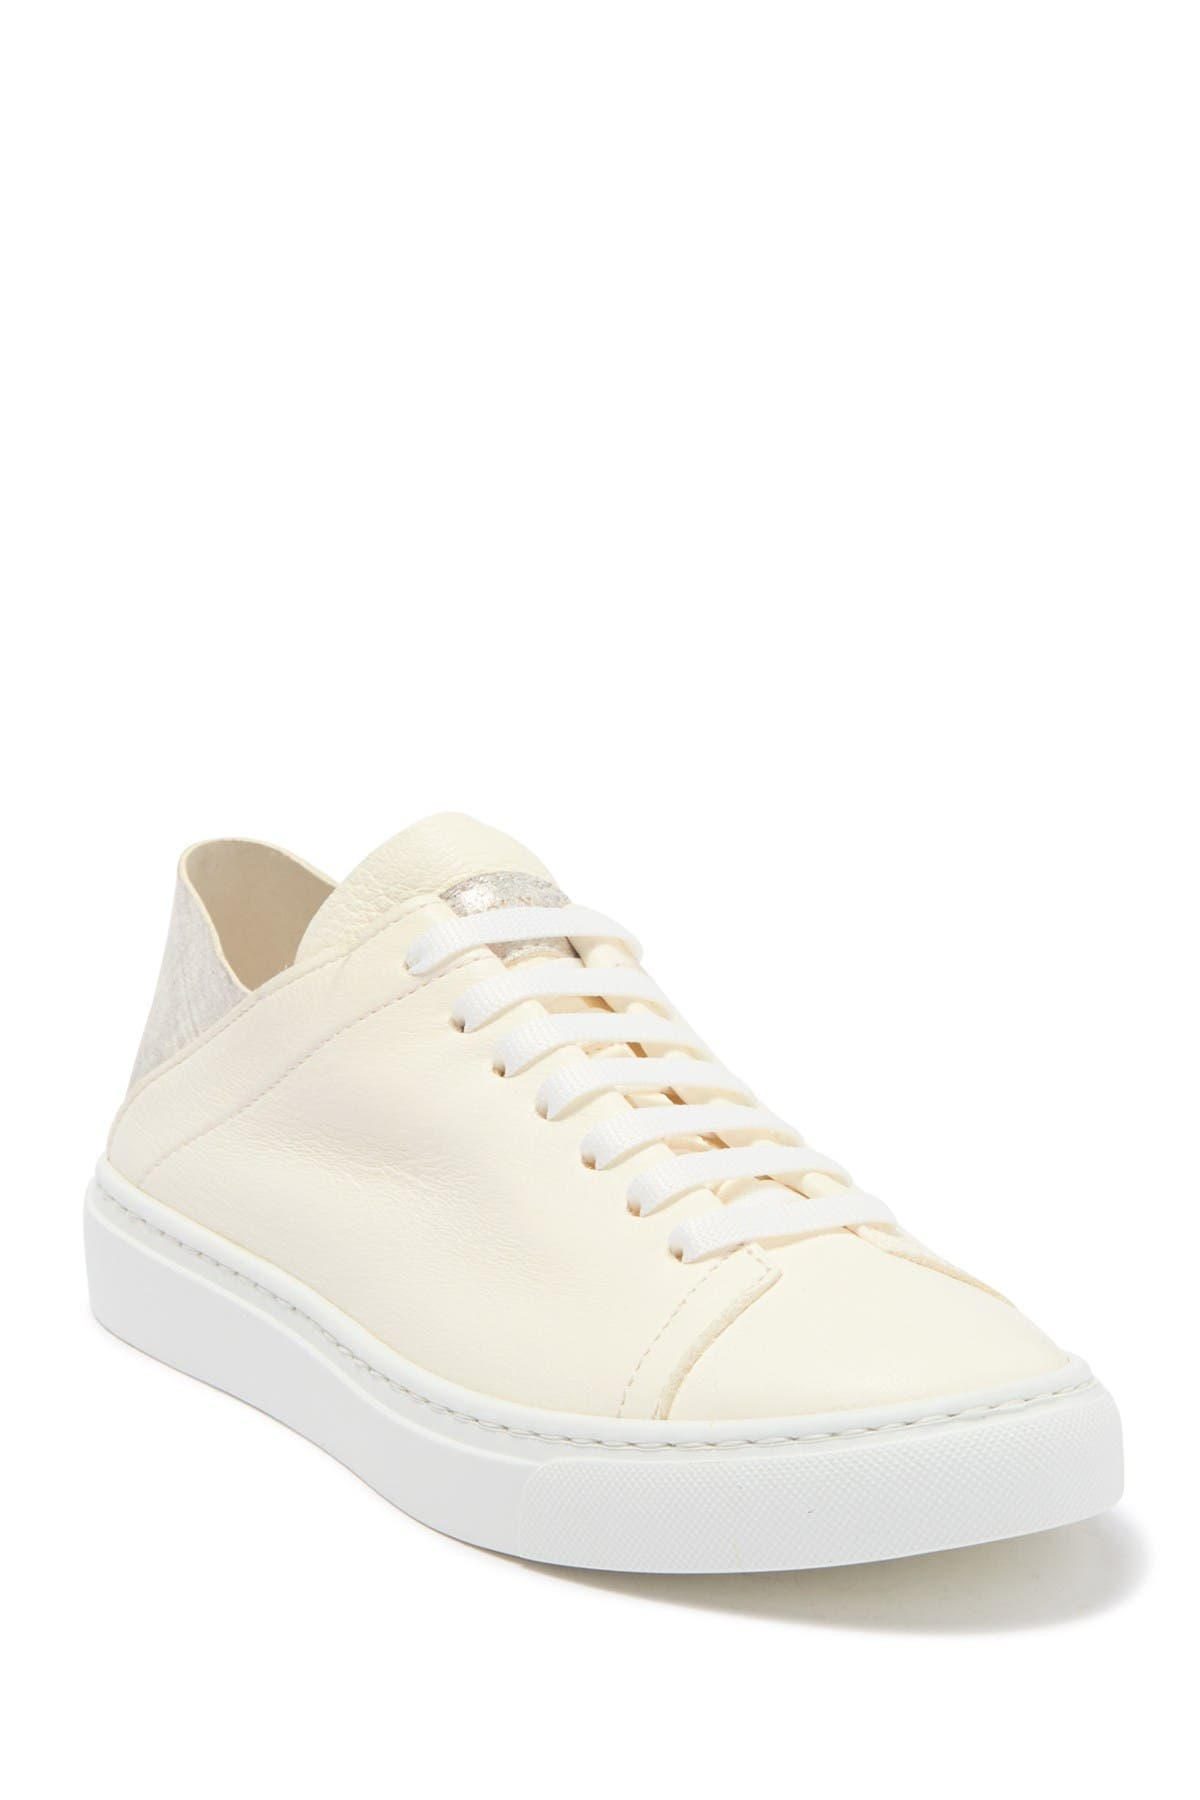 Image of To Boot New York Mia Leather Sneaker